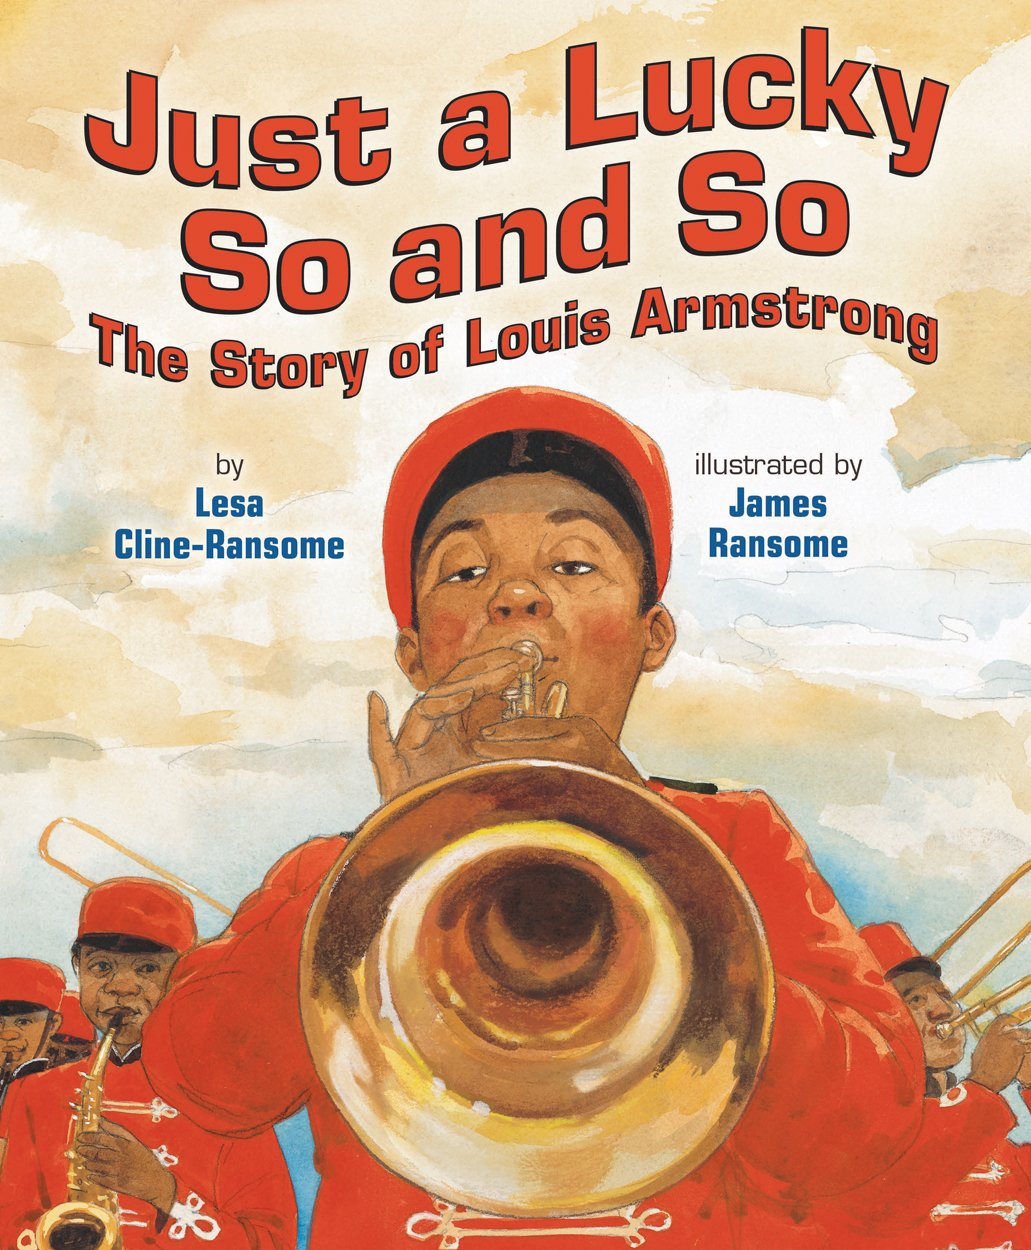 Just a Lucky So and So: The Story of Louis Armstrong - Lesa Cline-Ransome